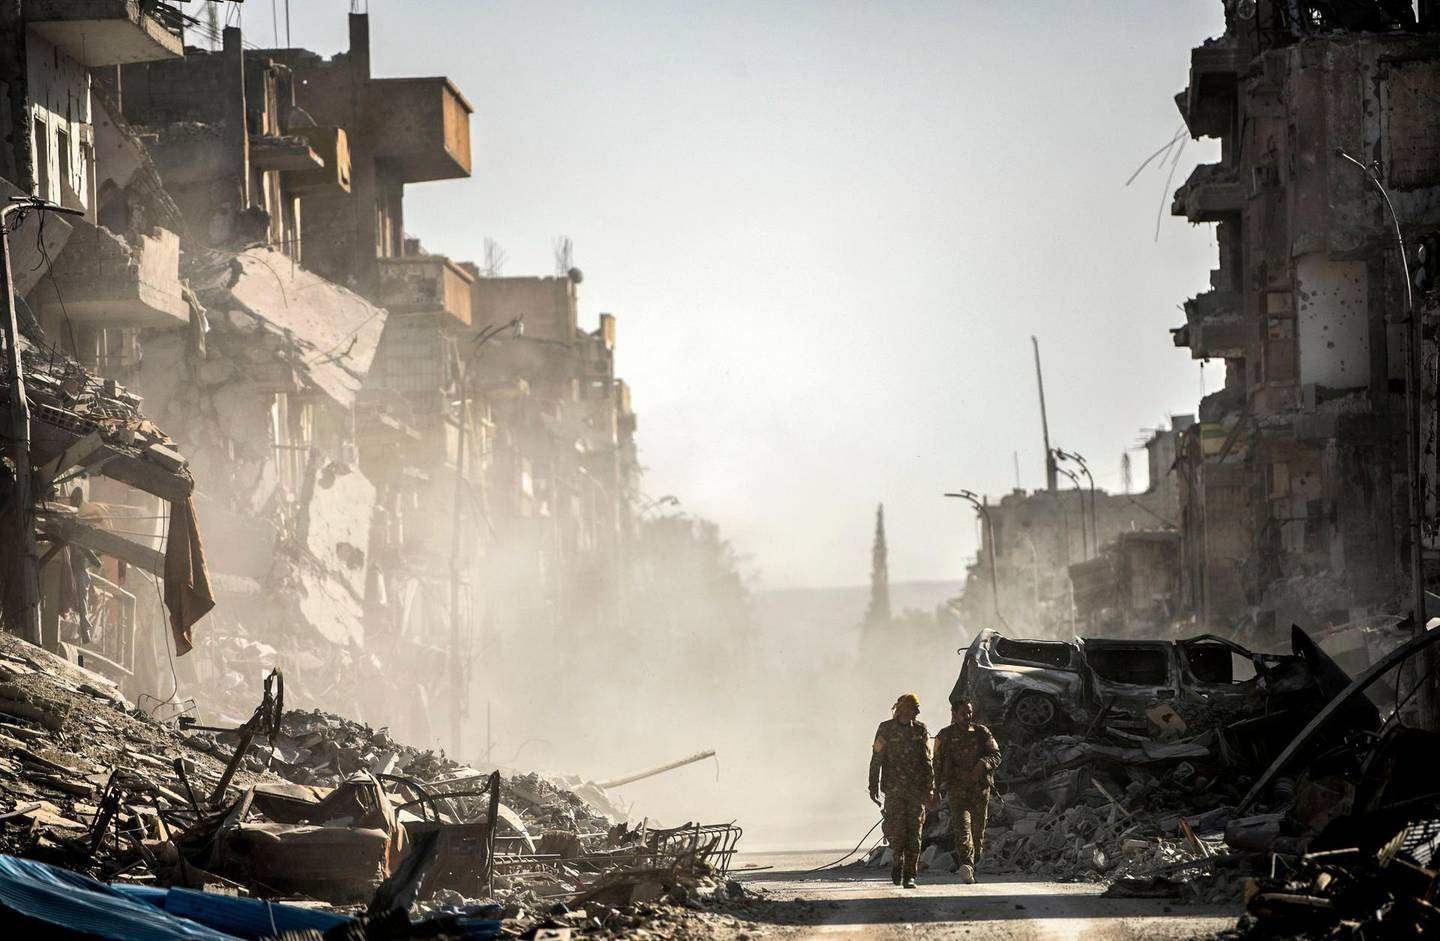 """(FILES) This file photo taken on October 20, 2017 shows fighters of the Syrian Democratic Forces (SDF) walking down a street in Raqa past destroyed vehicles and heavily damaged buildings after a Kurdish-led force expelled Islamic State (IS) group fighters from the northern Syrian city, formerly their """"capital"""". 2017 will be remembered as the year the Islamic State organisation's ultra-violent experiment in statehood was terminated but Iraq and Syria are left staring at ruined cities and daunting challenges. / AFP PHOTO / BULENT KILIC"""